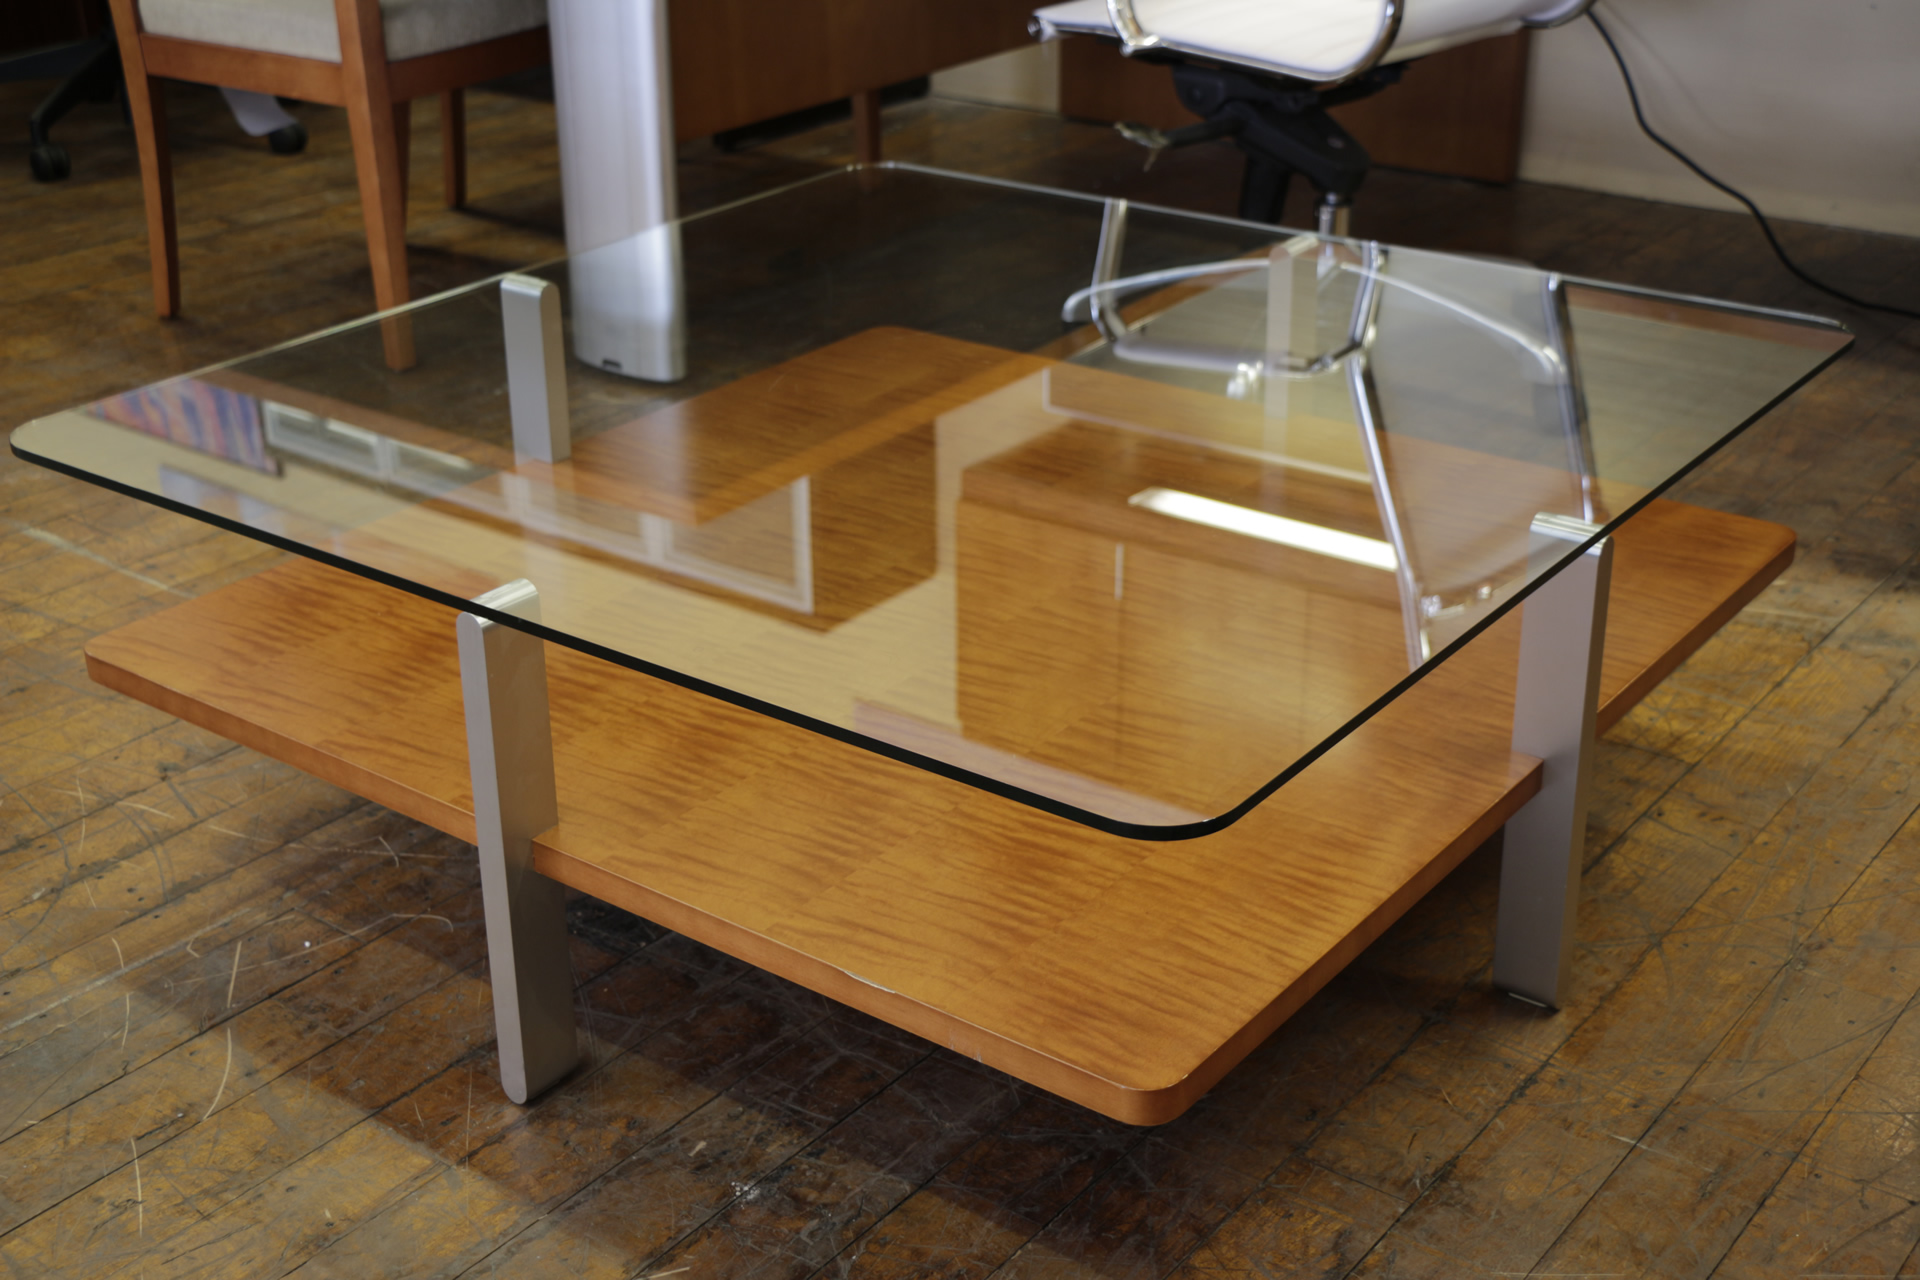 Bernhardt Anigre and Glass Square Coffee Tables